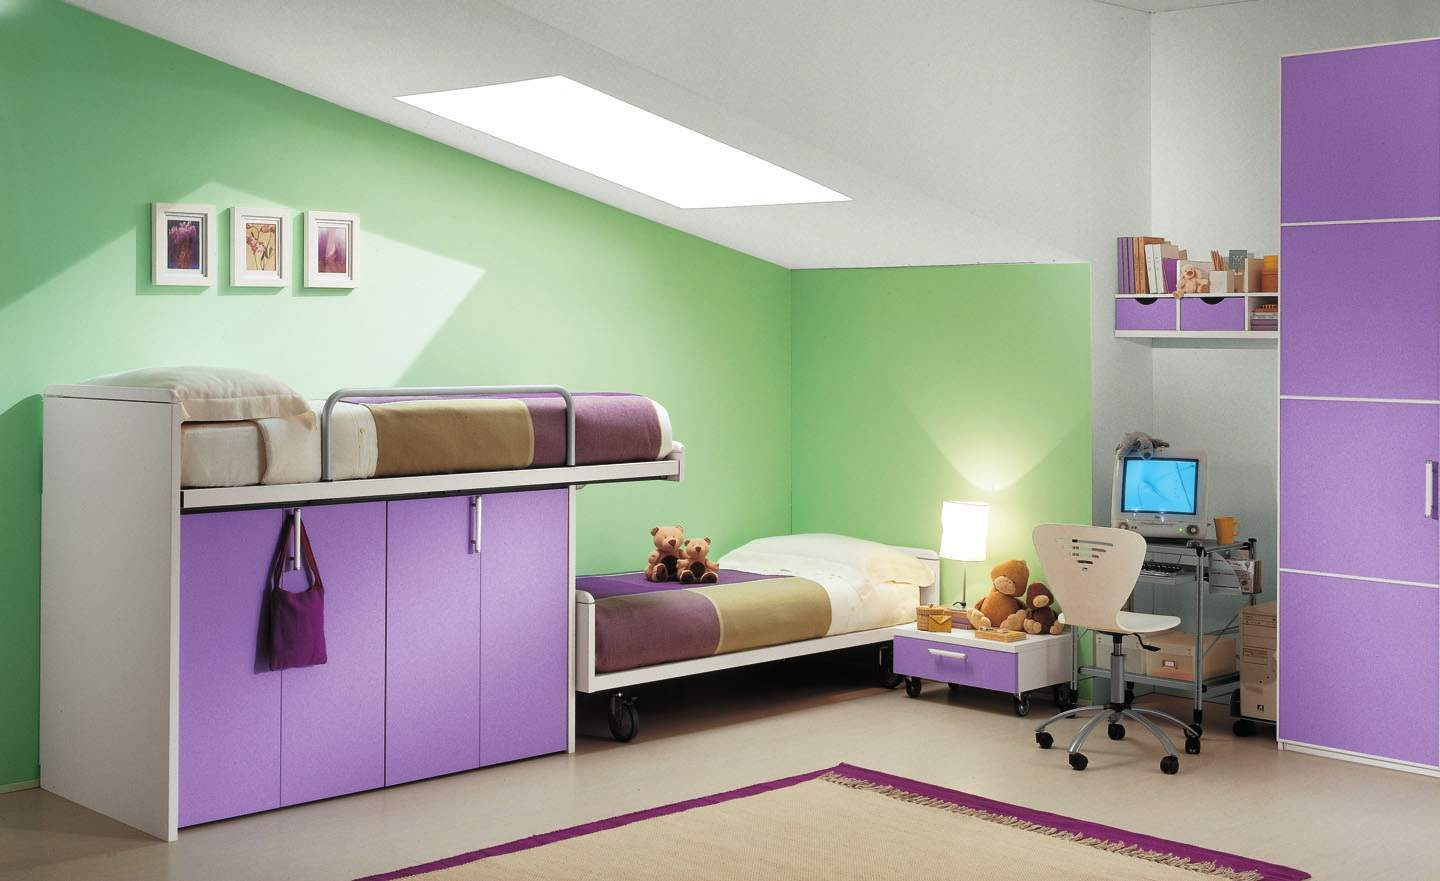 Green and Purple Bedroom Ideas 1440 x 881